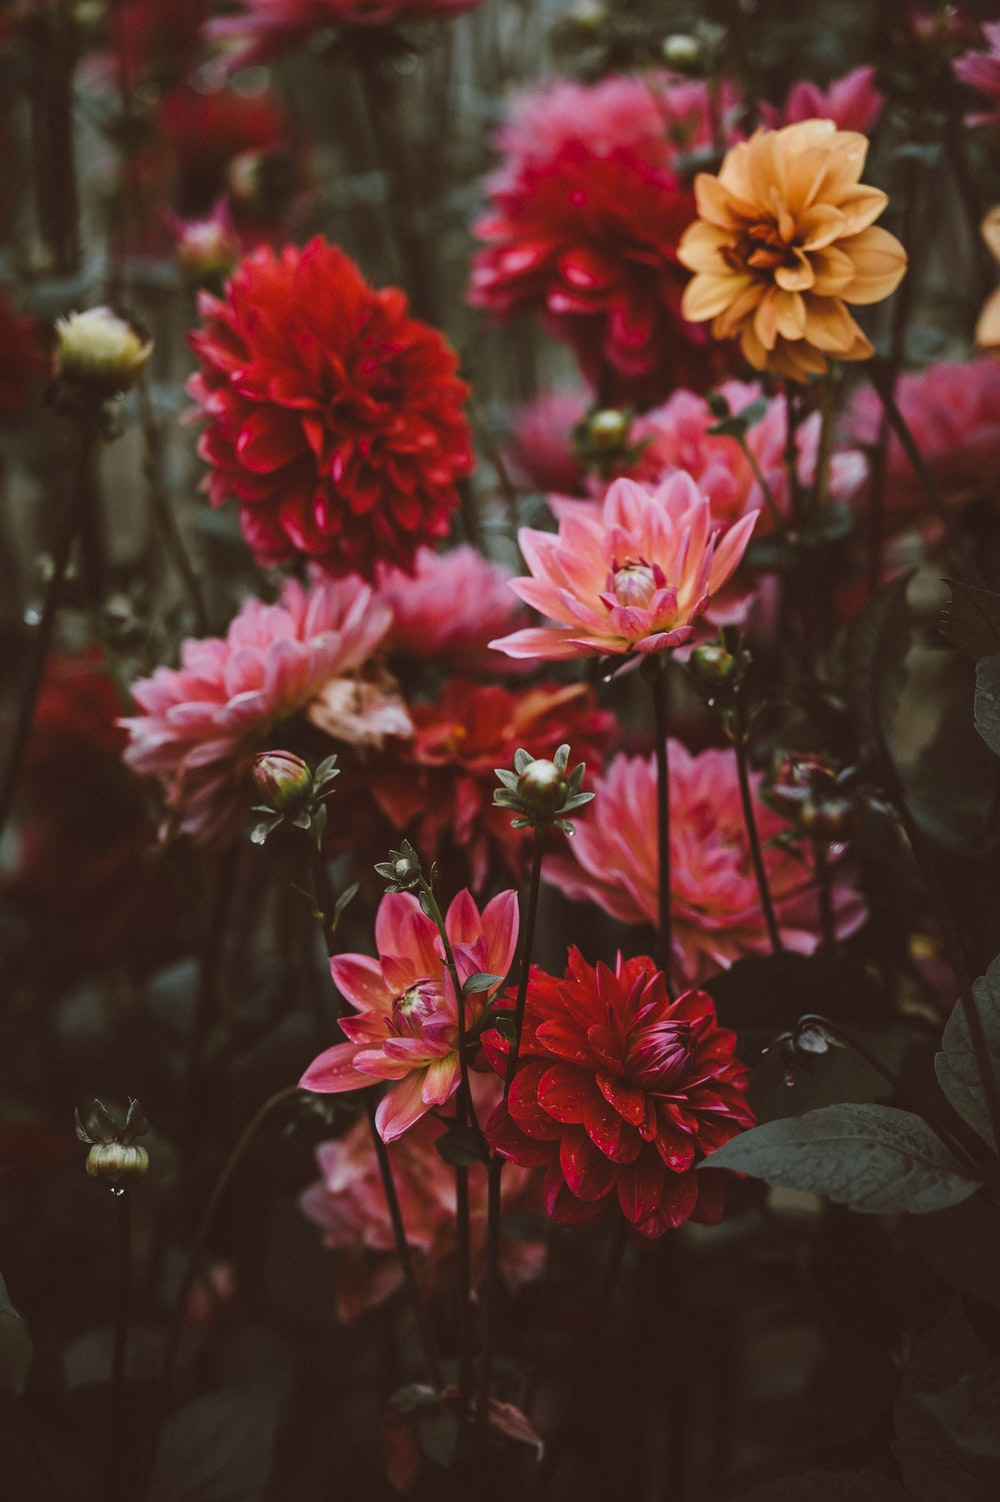 blooming red and yellow petaled flowers